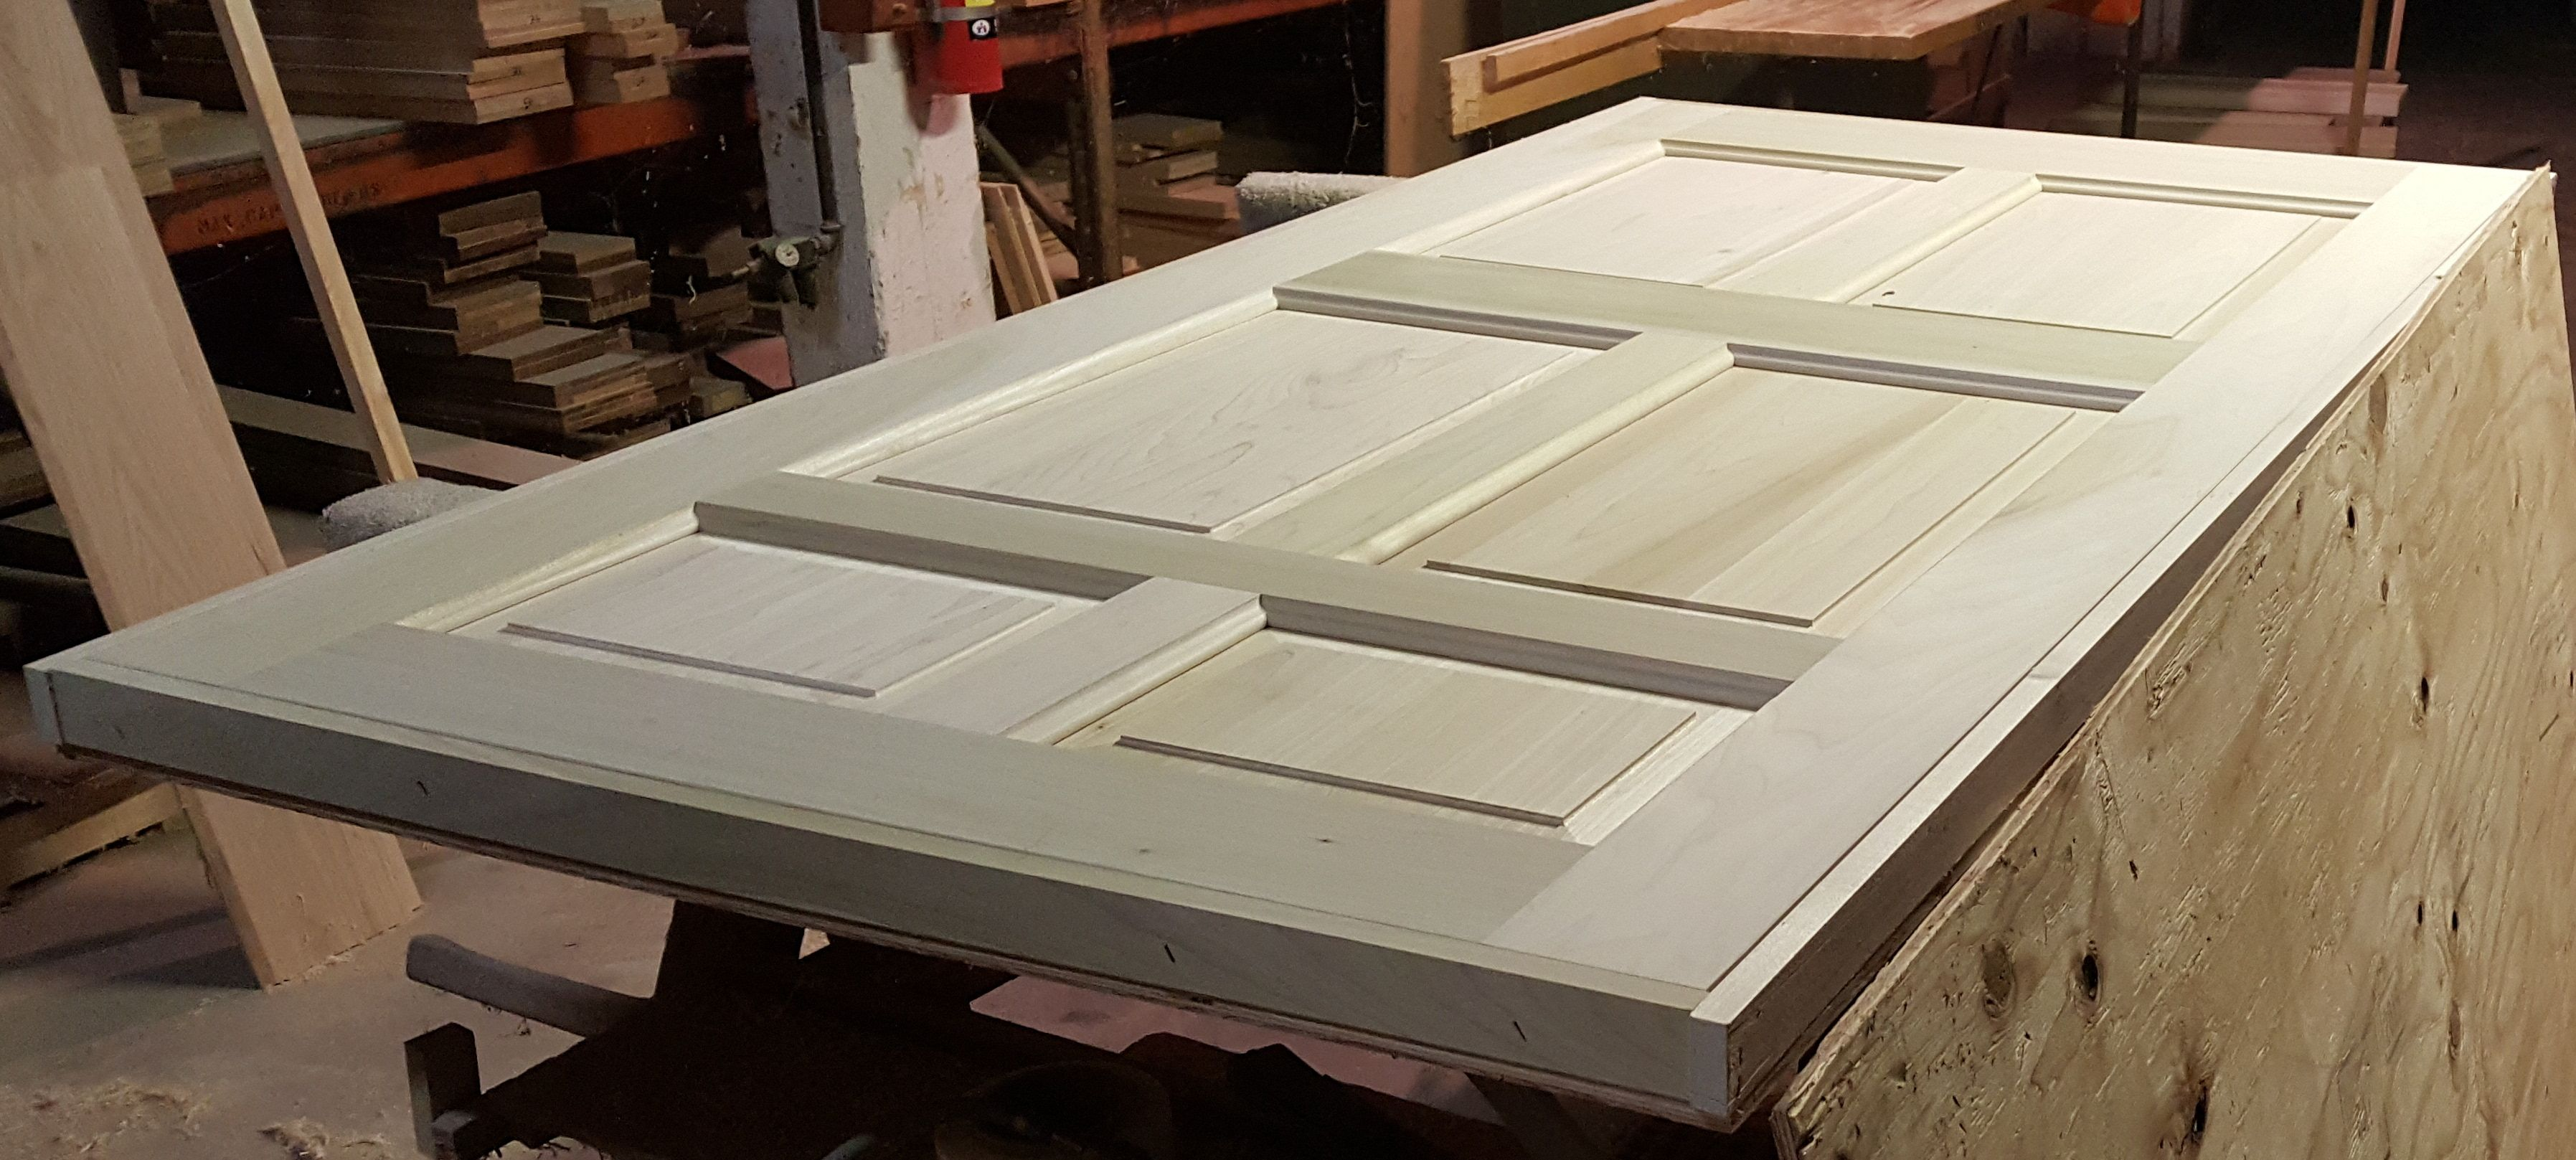 This Standard 6 Panel Raised Panel Door In Poplar 1 3 4 Thick 40 X 80 Is Being Packaged And Will Be Raised Panel Doors Closet Door Hardware Pocket Doors